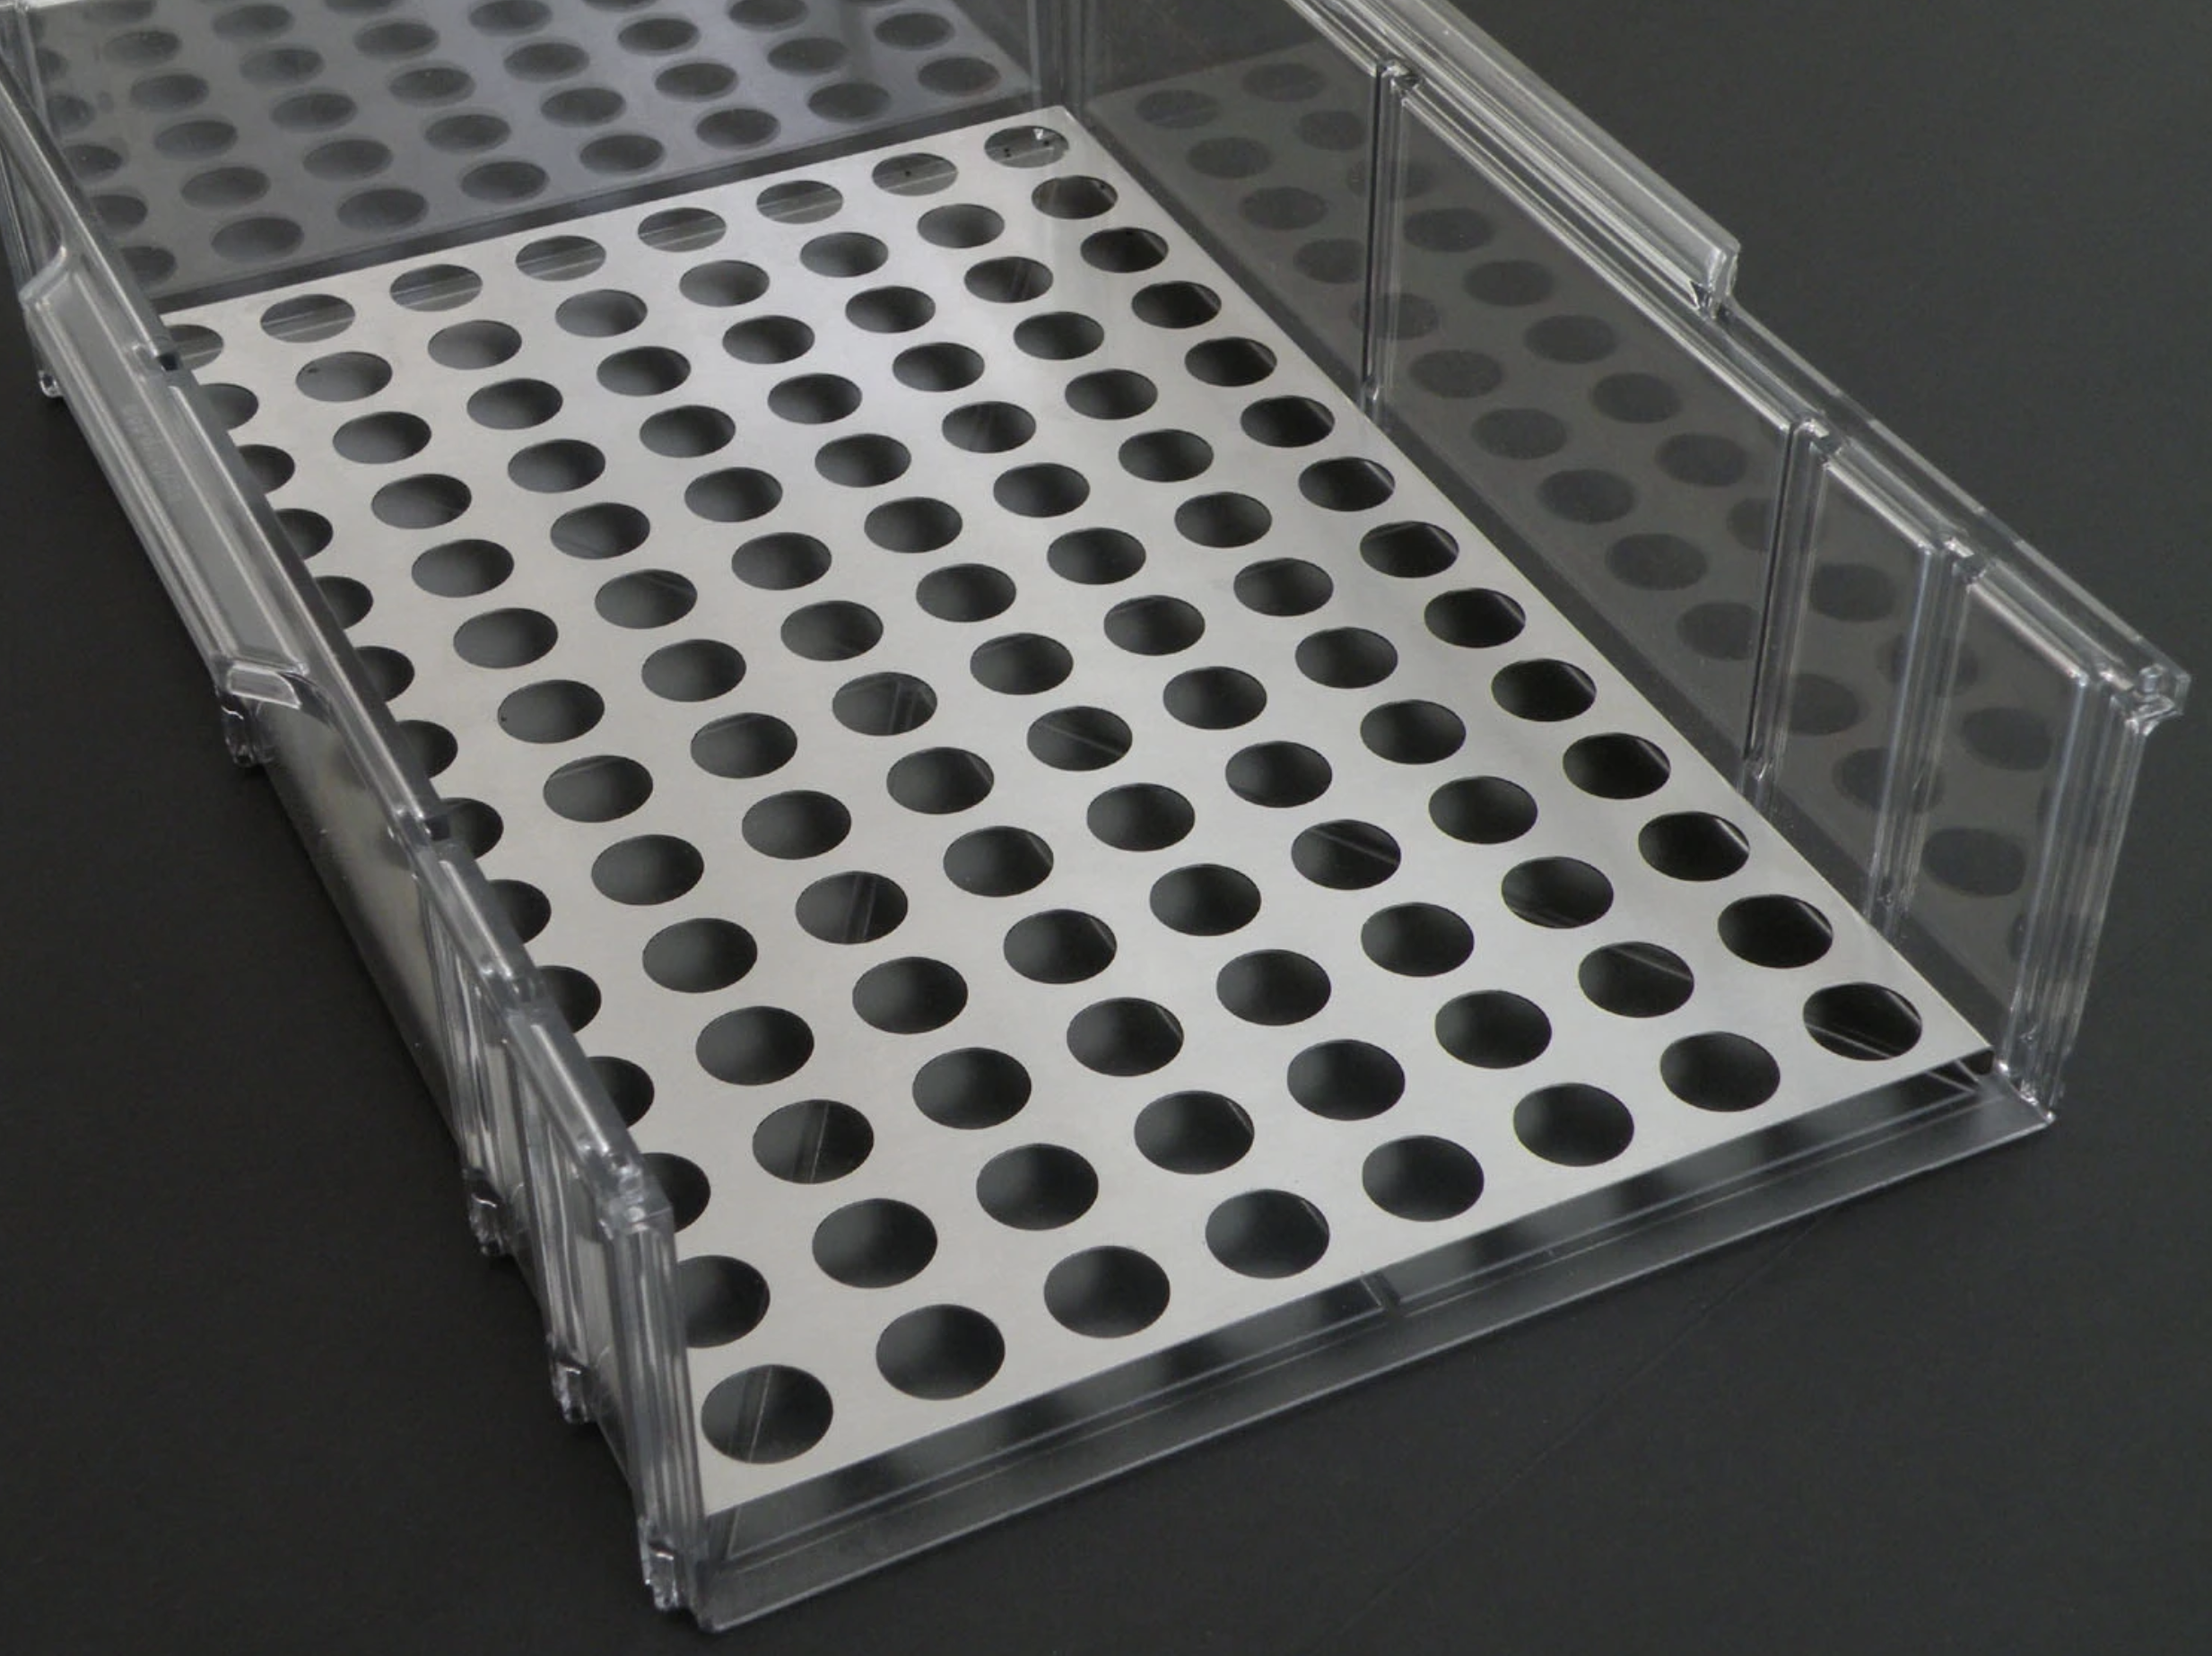 Vial Tray with Vial Placement